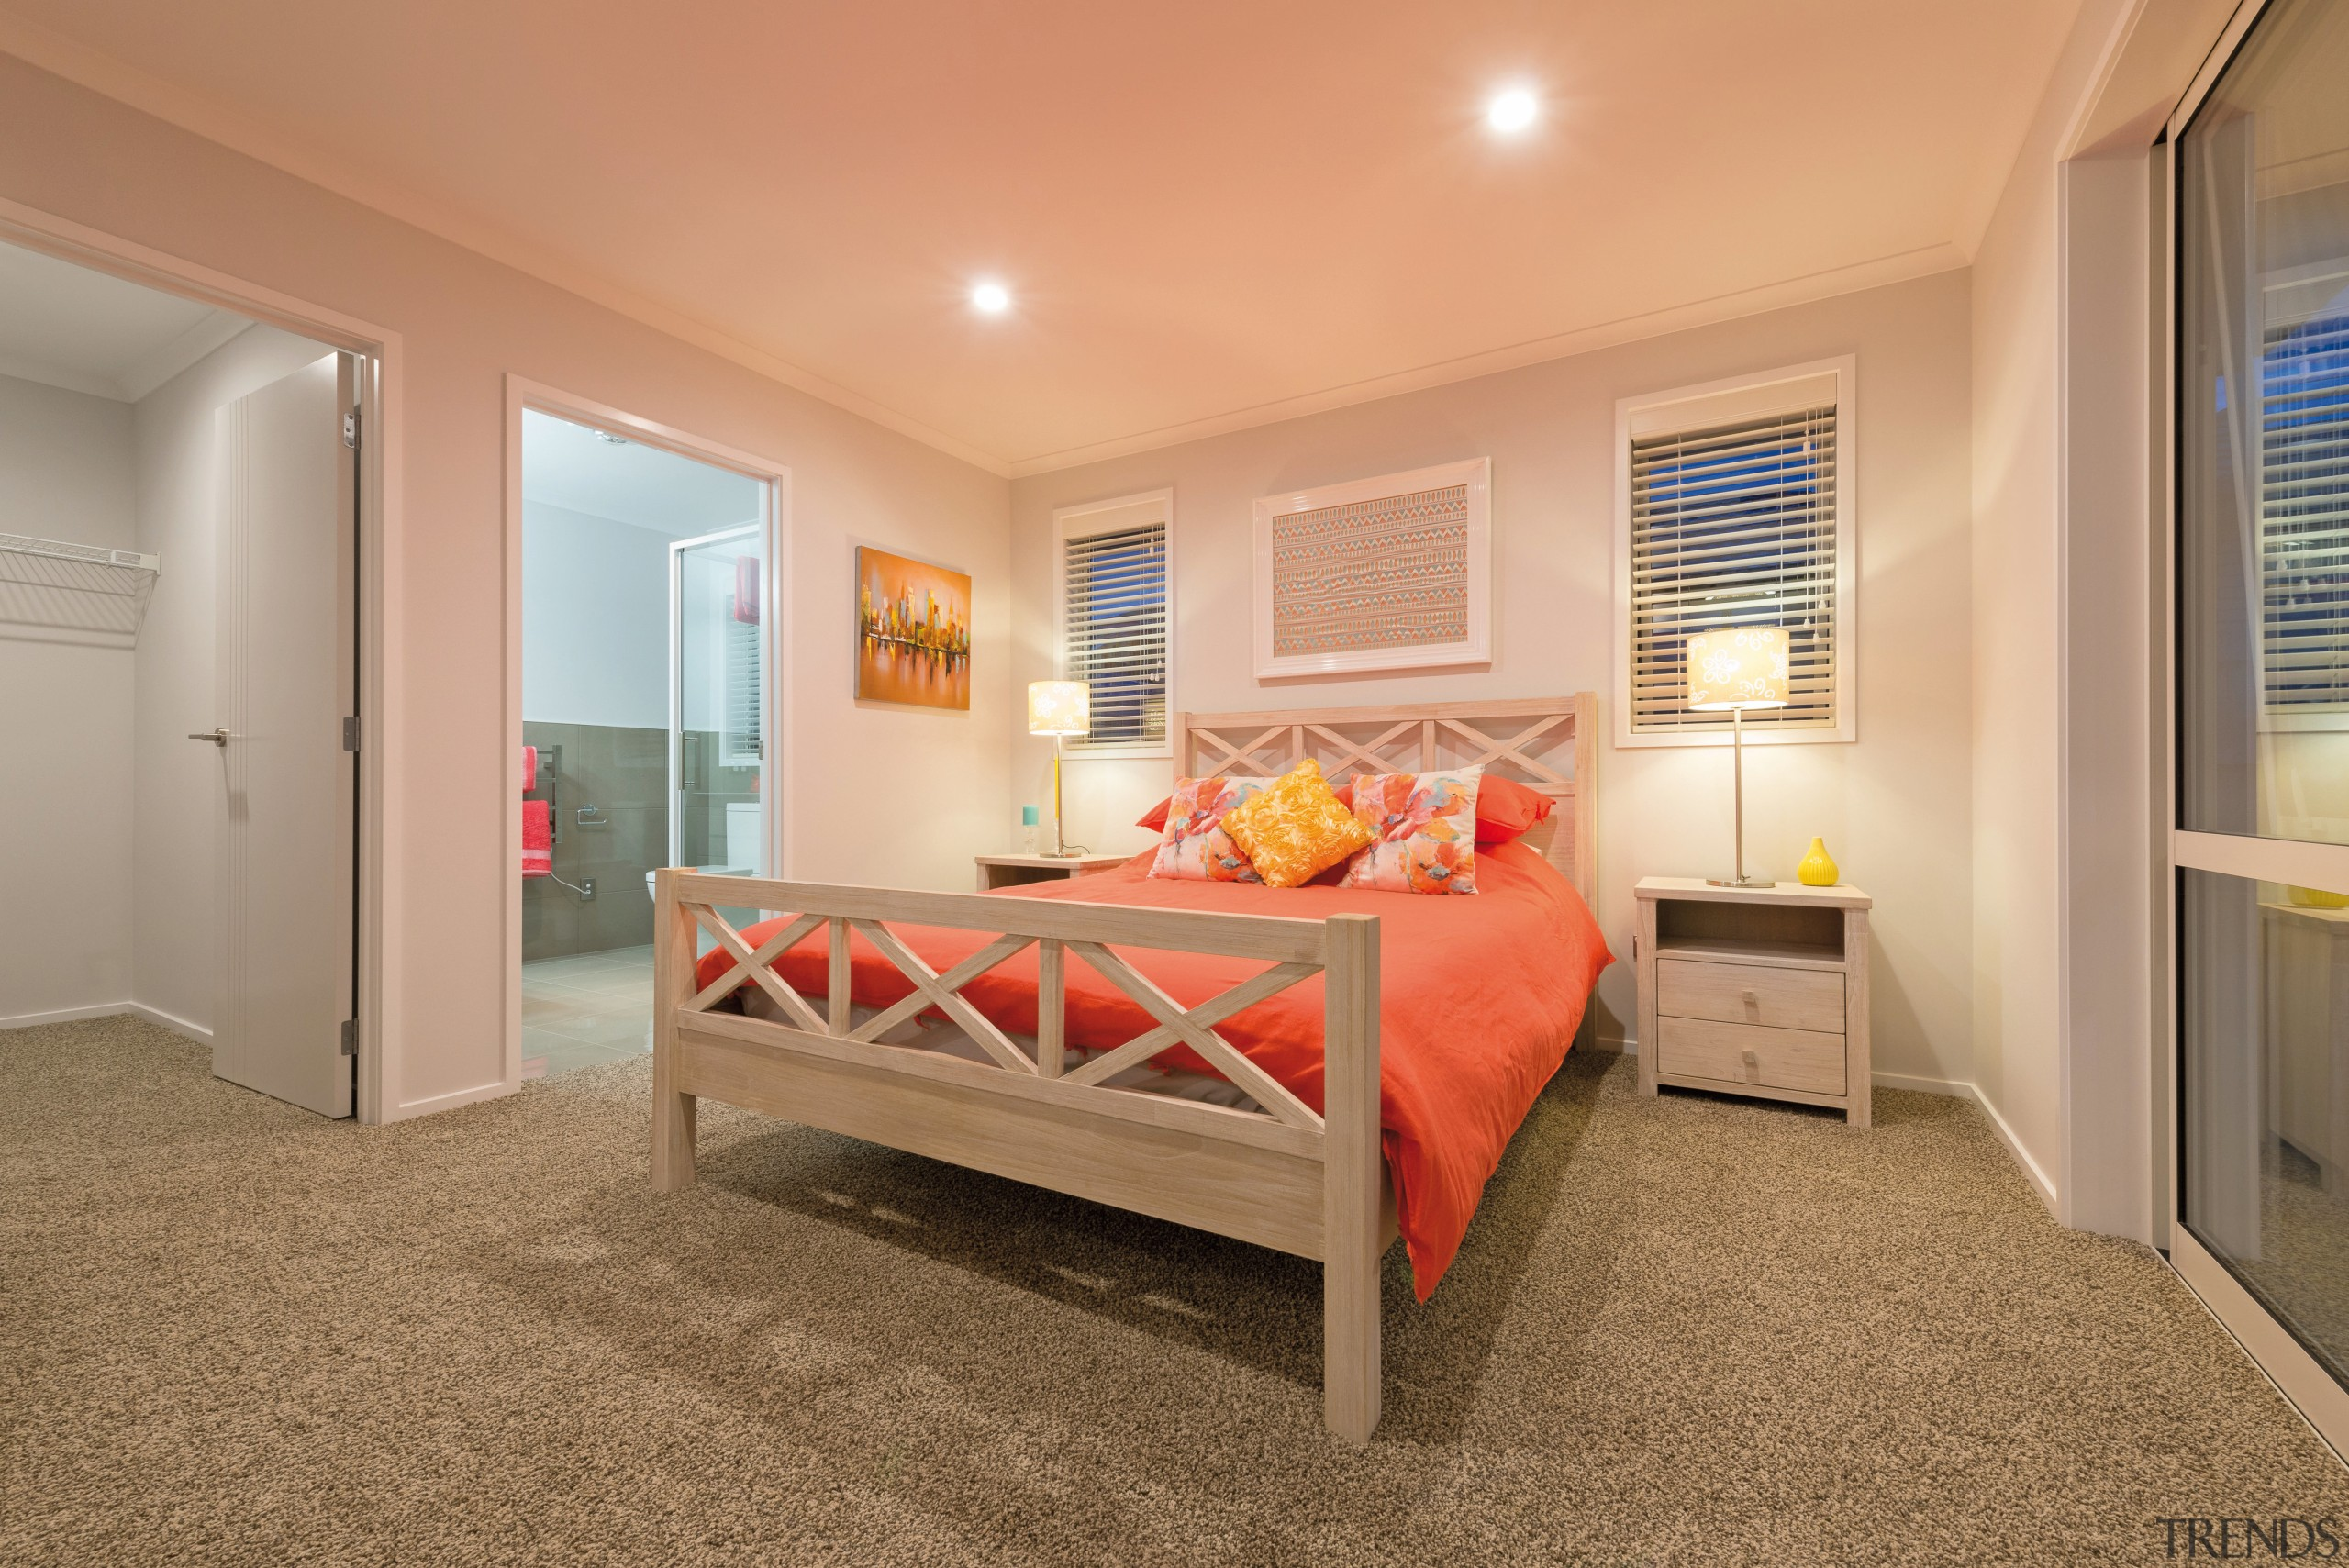 The master suite in this GJ Gardner Homes bed frame, bedroom, ceiling, floor, home, interior design, property, real estate, room, orange, brown